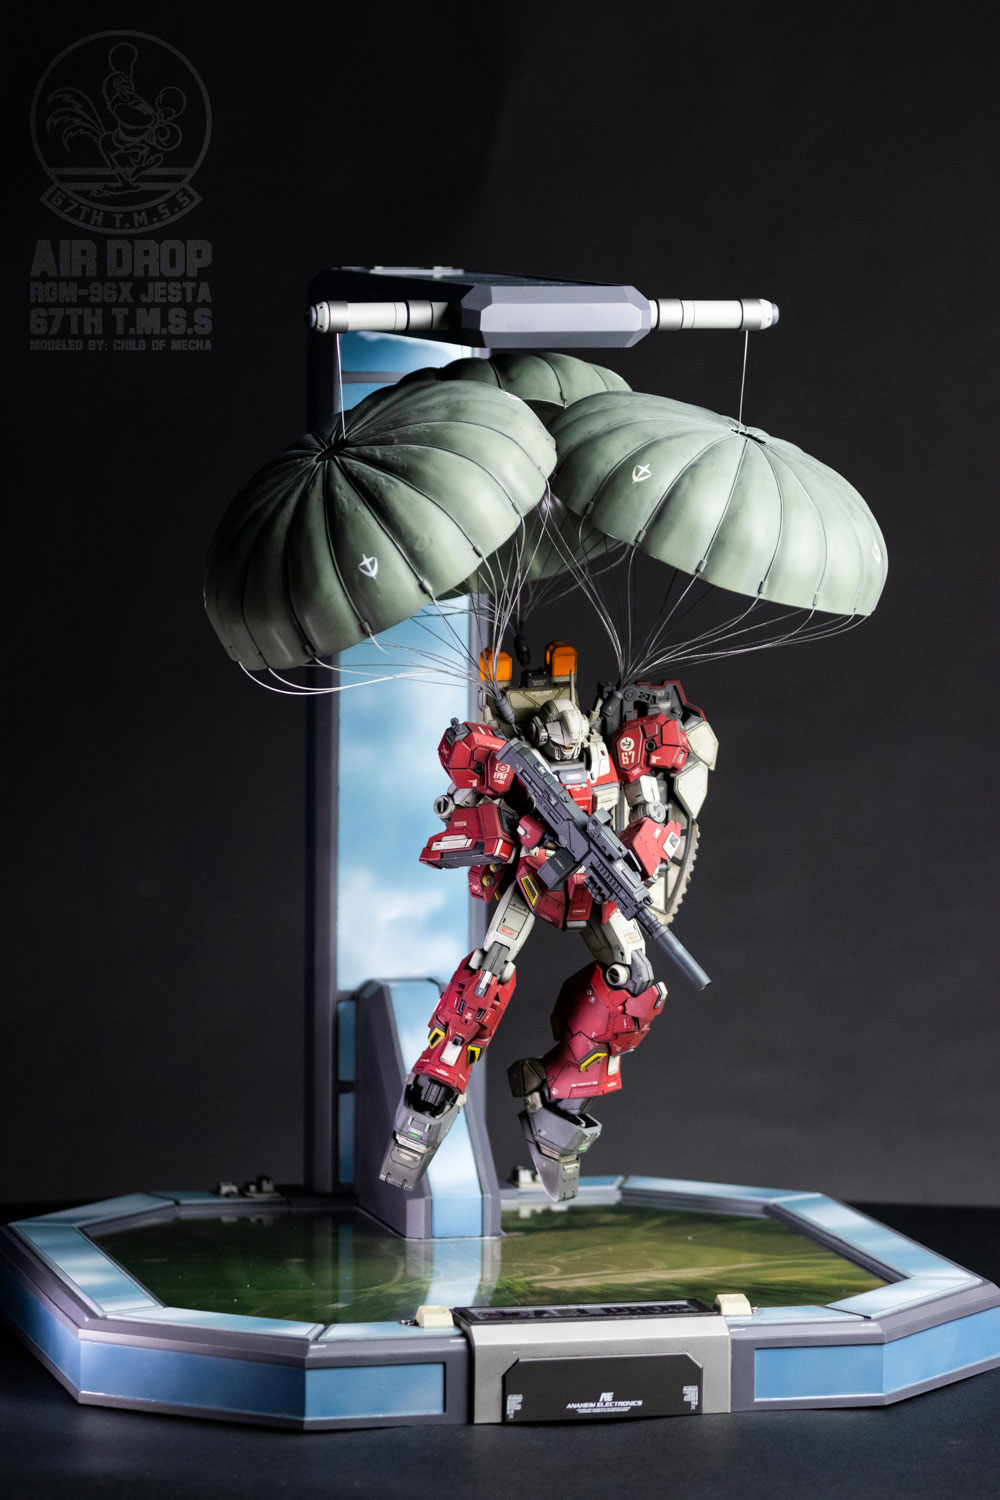 Air Drop - Jesta - 161.jpg